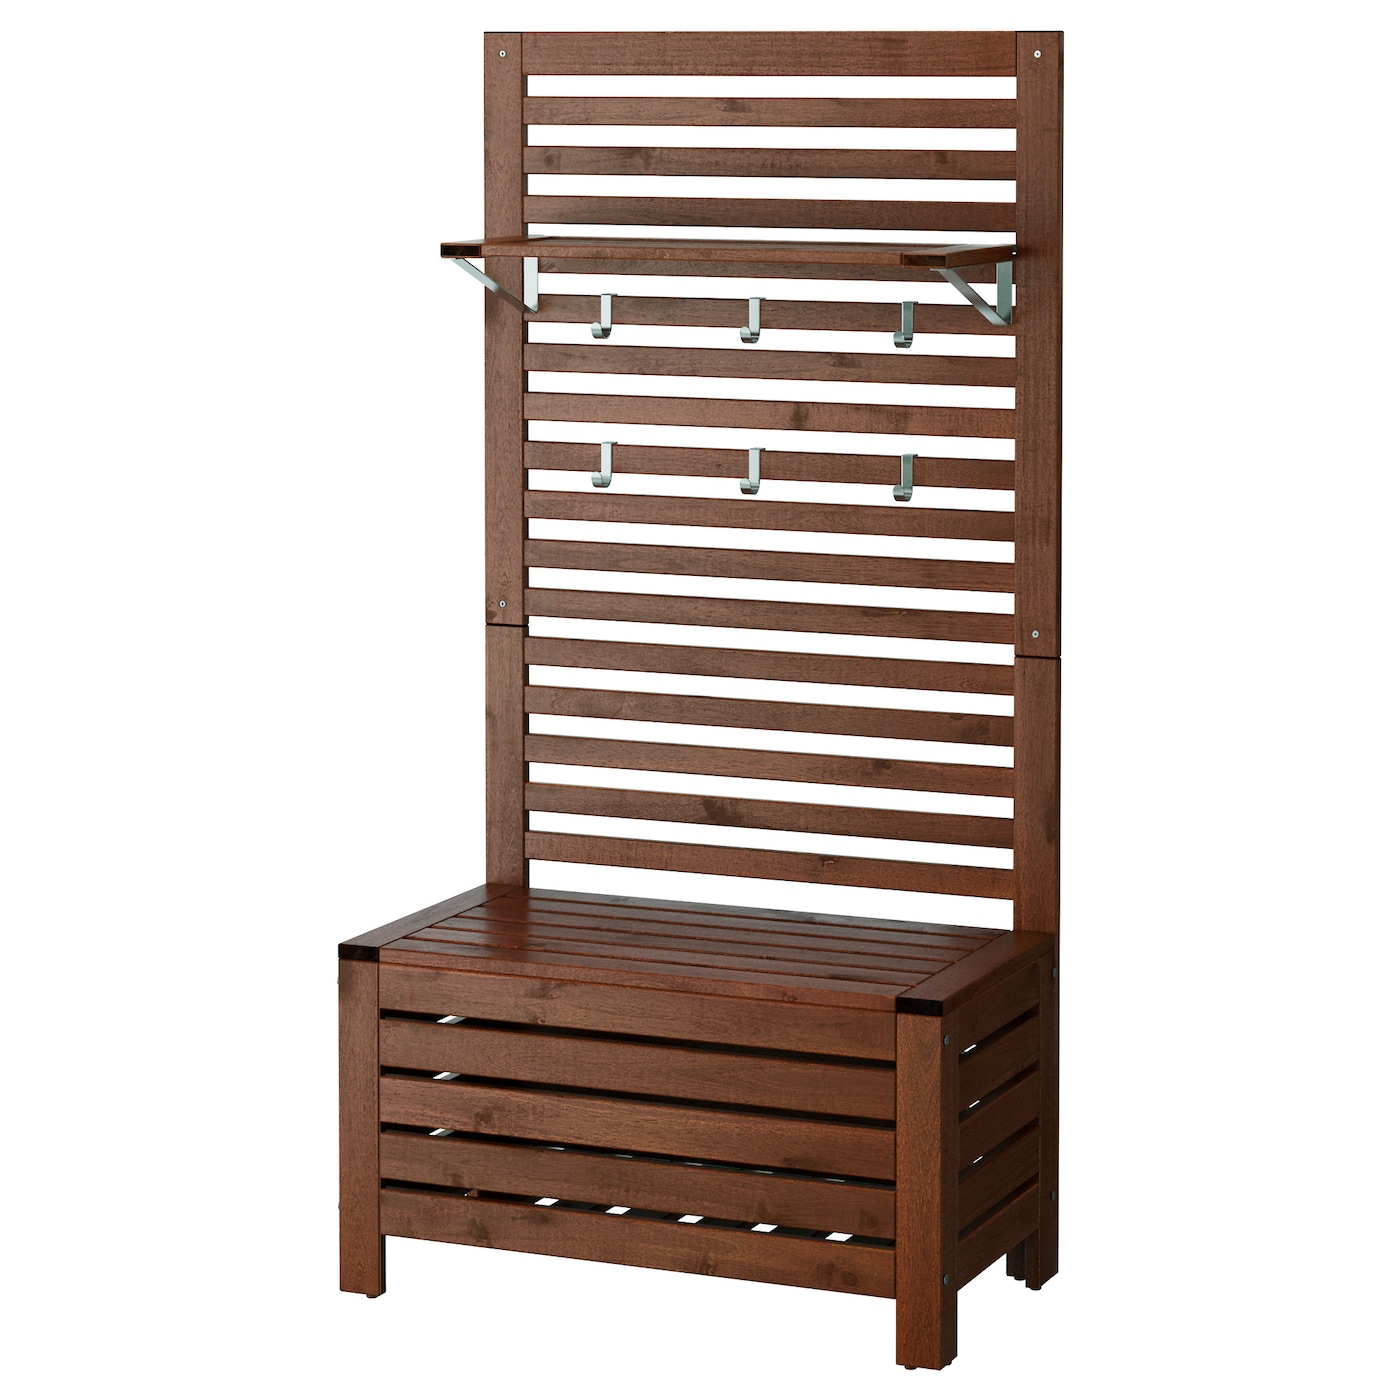 196 Pplar 214 Bench W Wall Panel Shelf Outdoor Brown Stained